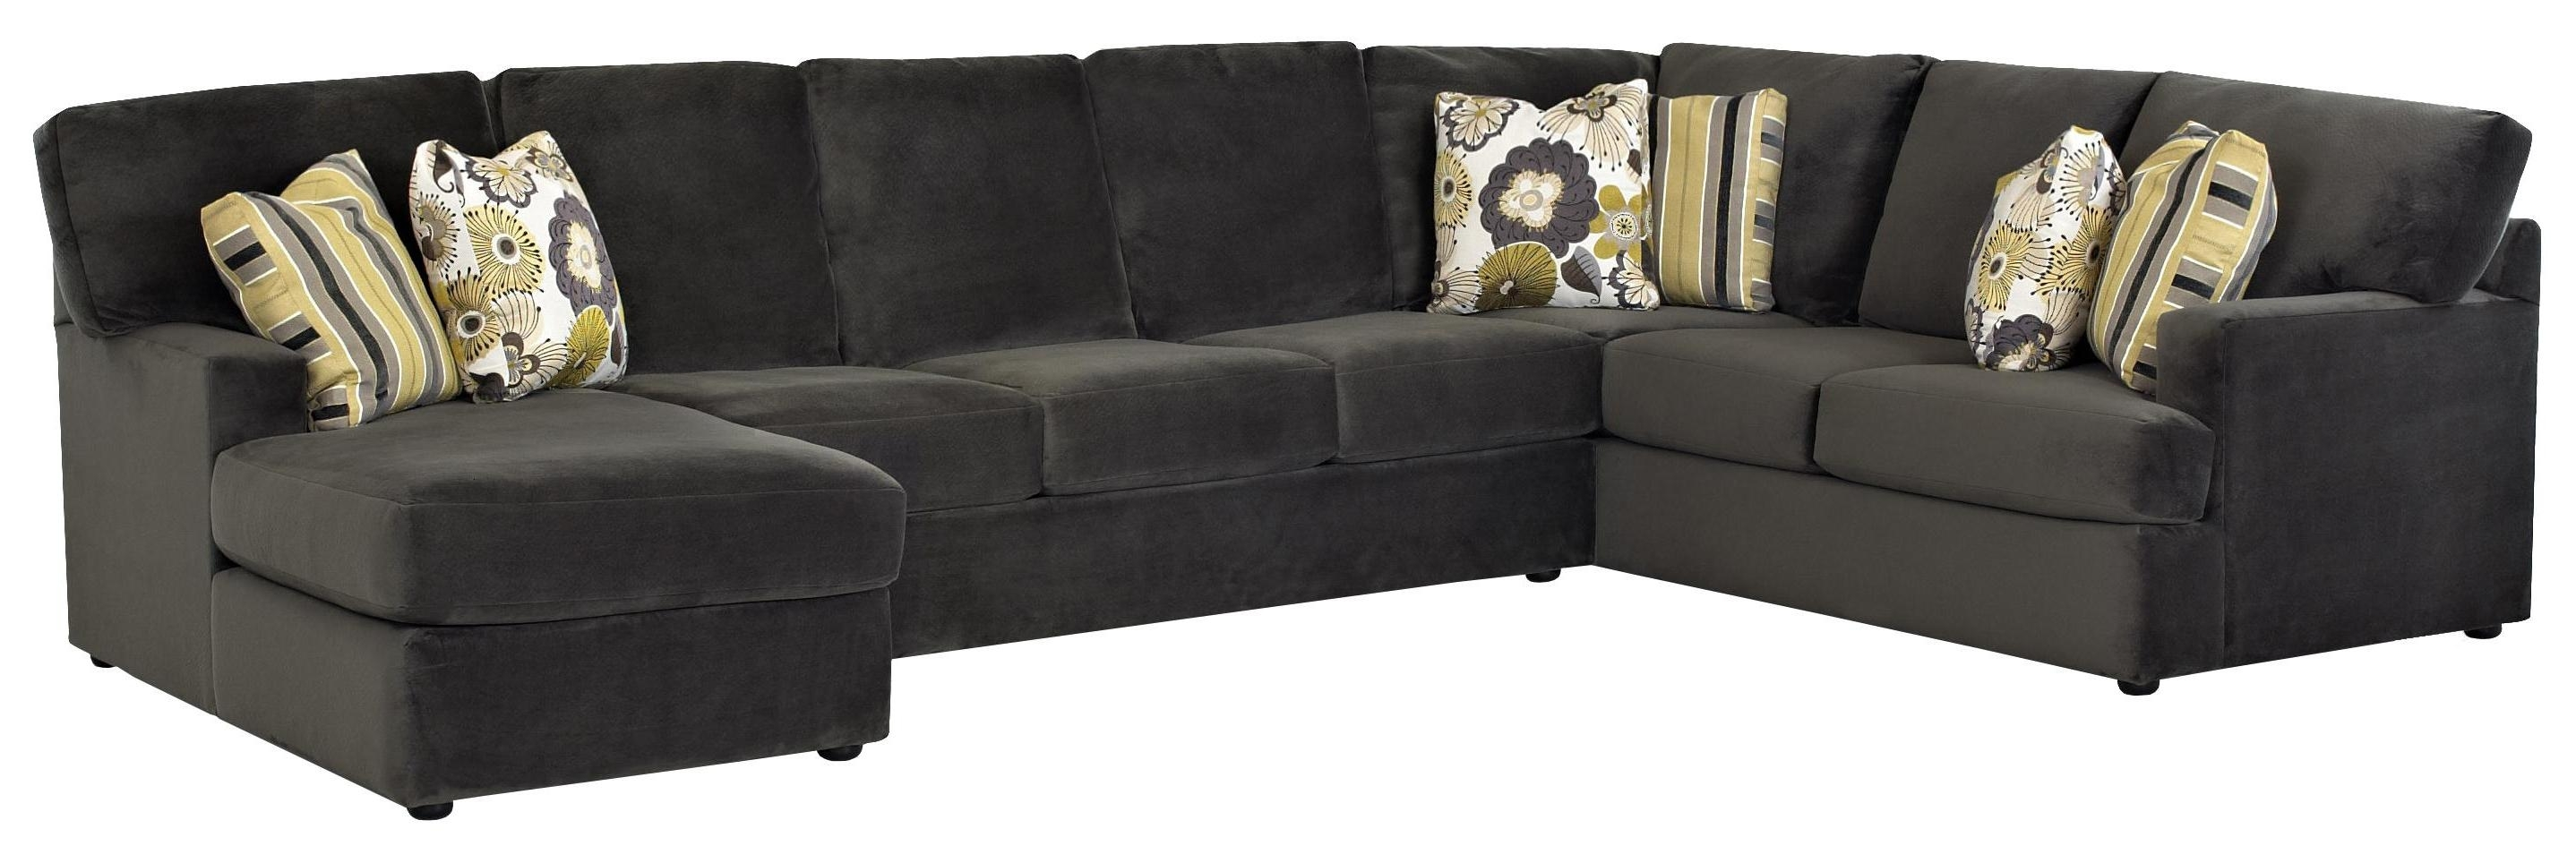 Sectional Sofa With Left Side Chaiseklaussner | Wolf And Inside Gardiners Sectional Sofas (View 7 of 10)